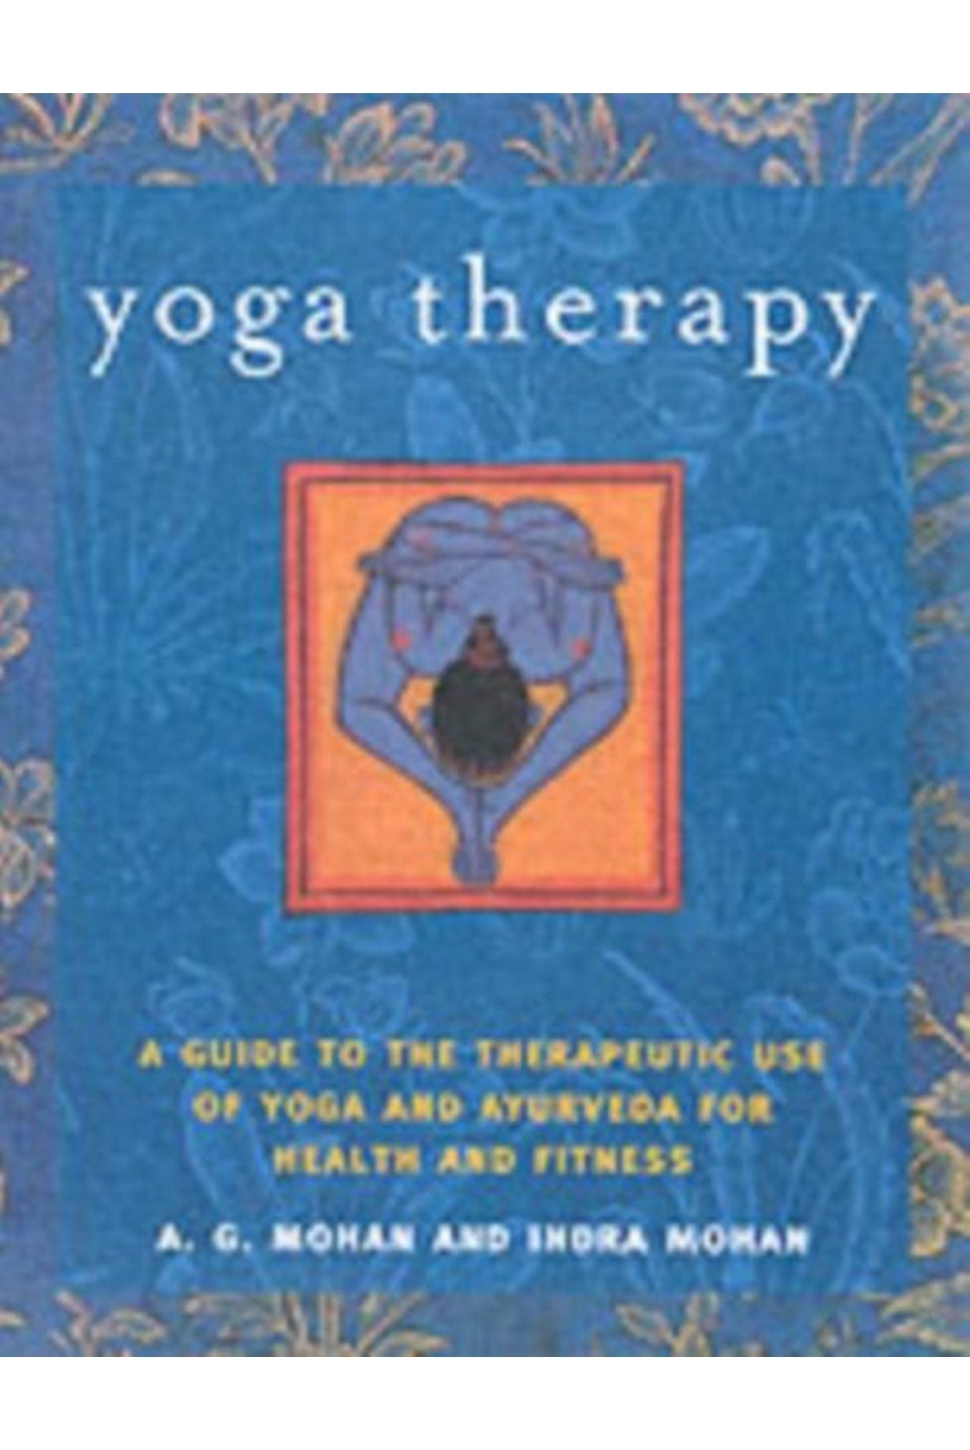 Yoga Therapy, Mohan